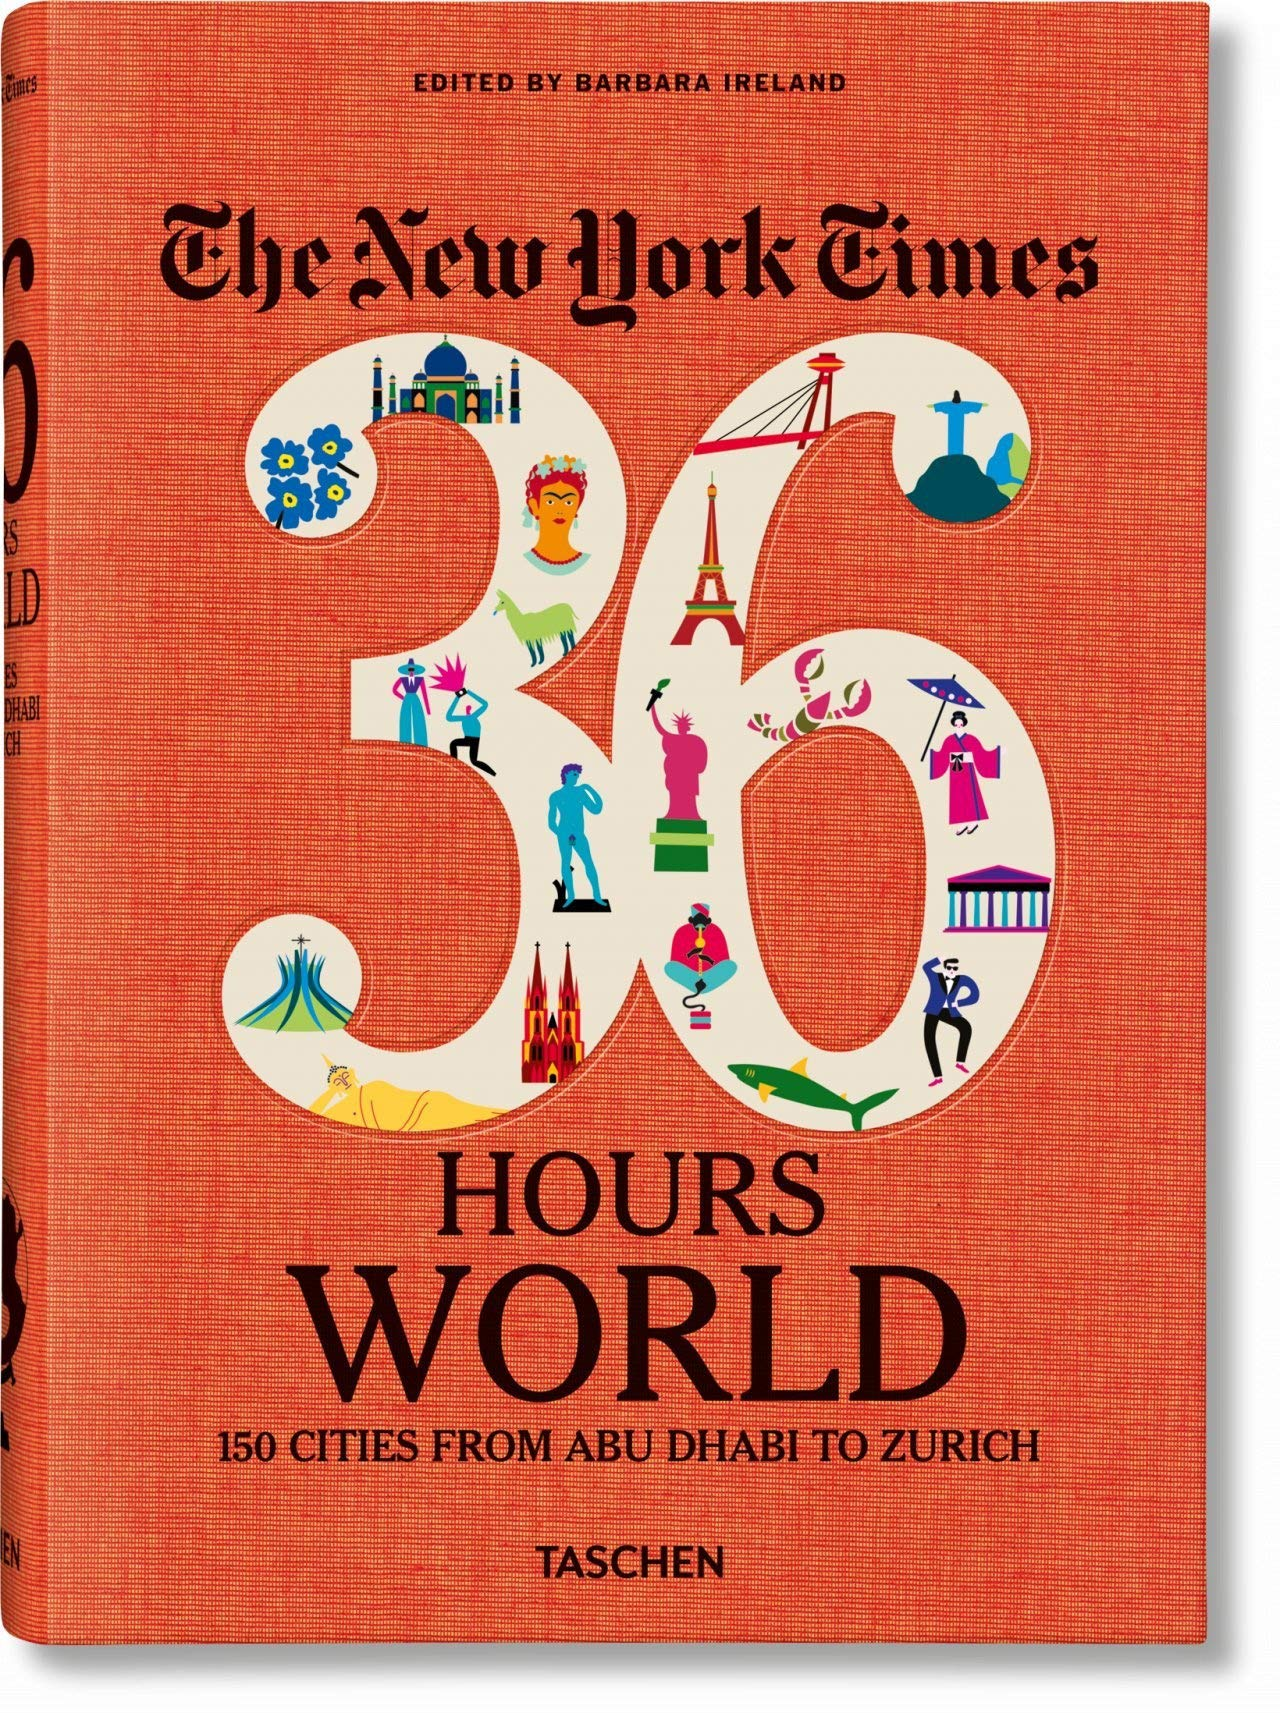 The New York Times: 36 Hours World, 150 Cities from Abu Dhabi to Zurich by INGRAM BOOK COMPANY